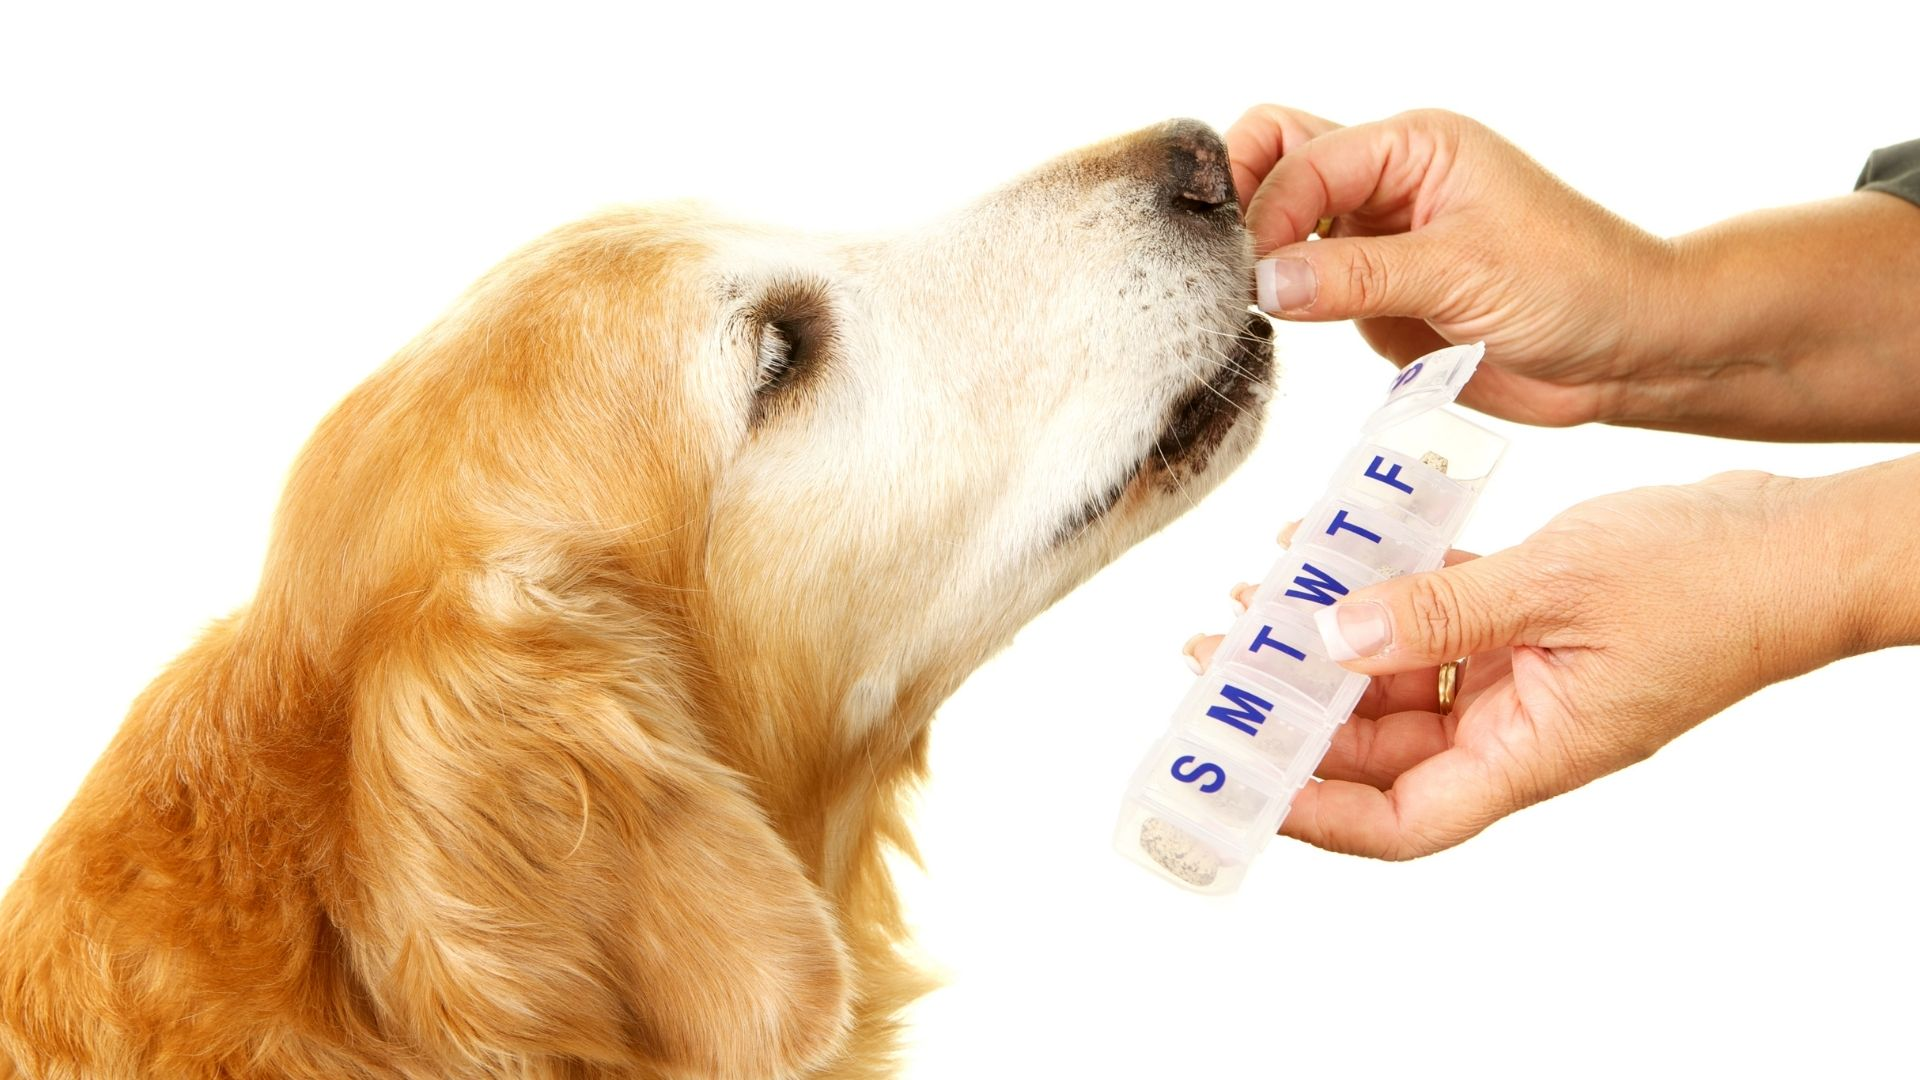 Amoxicillin for Dogs: Uses, Dosage and Side Effects